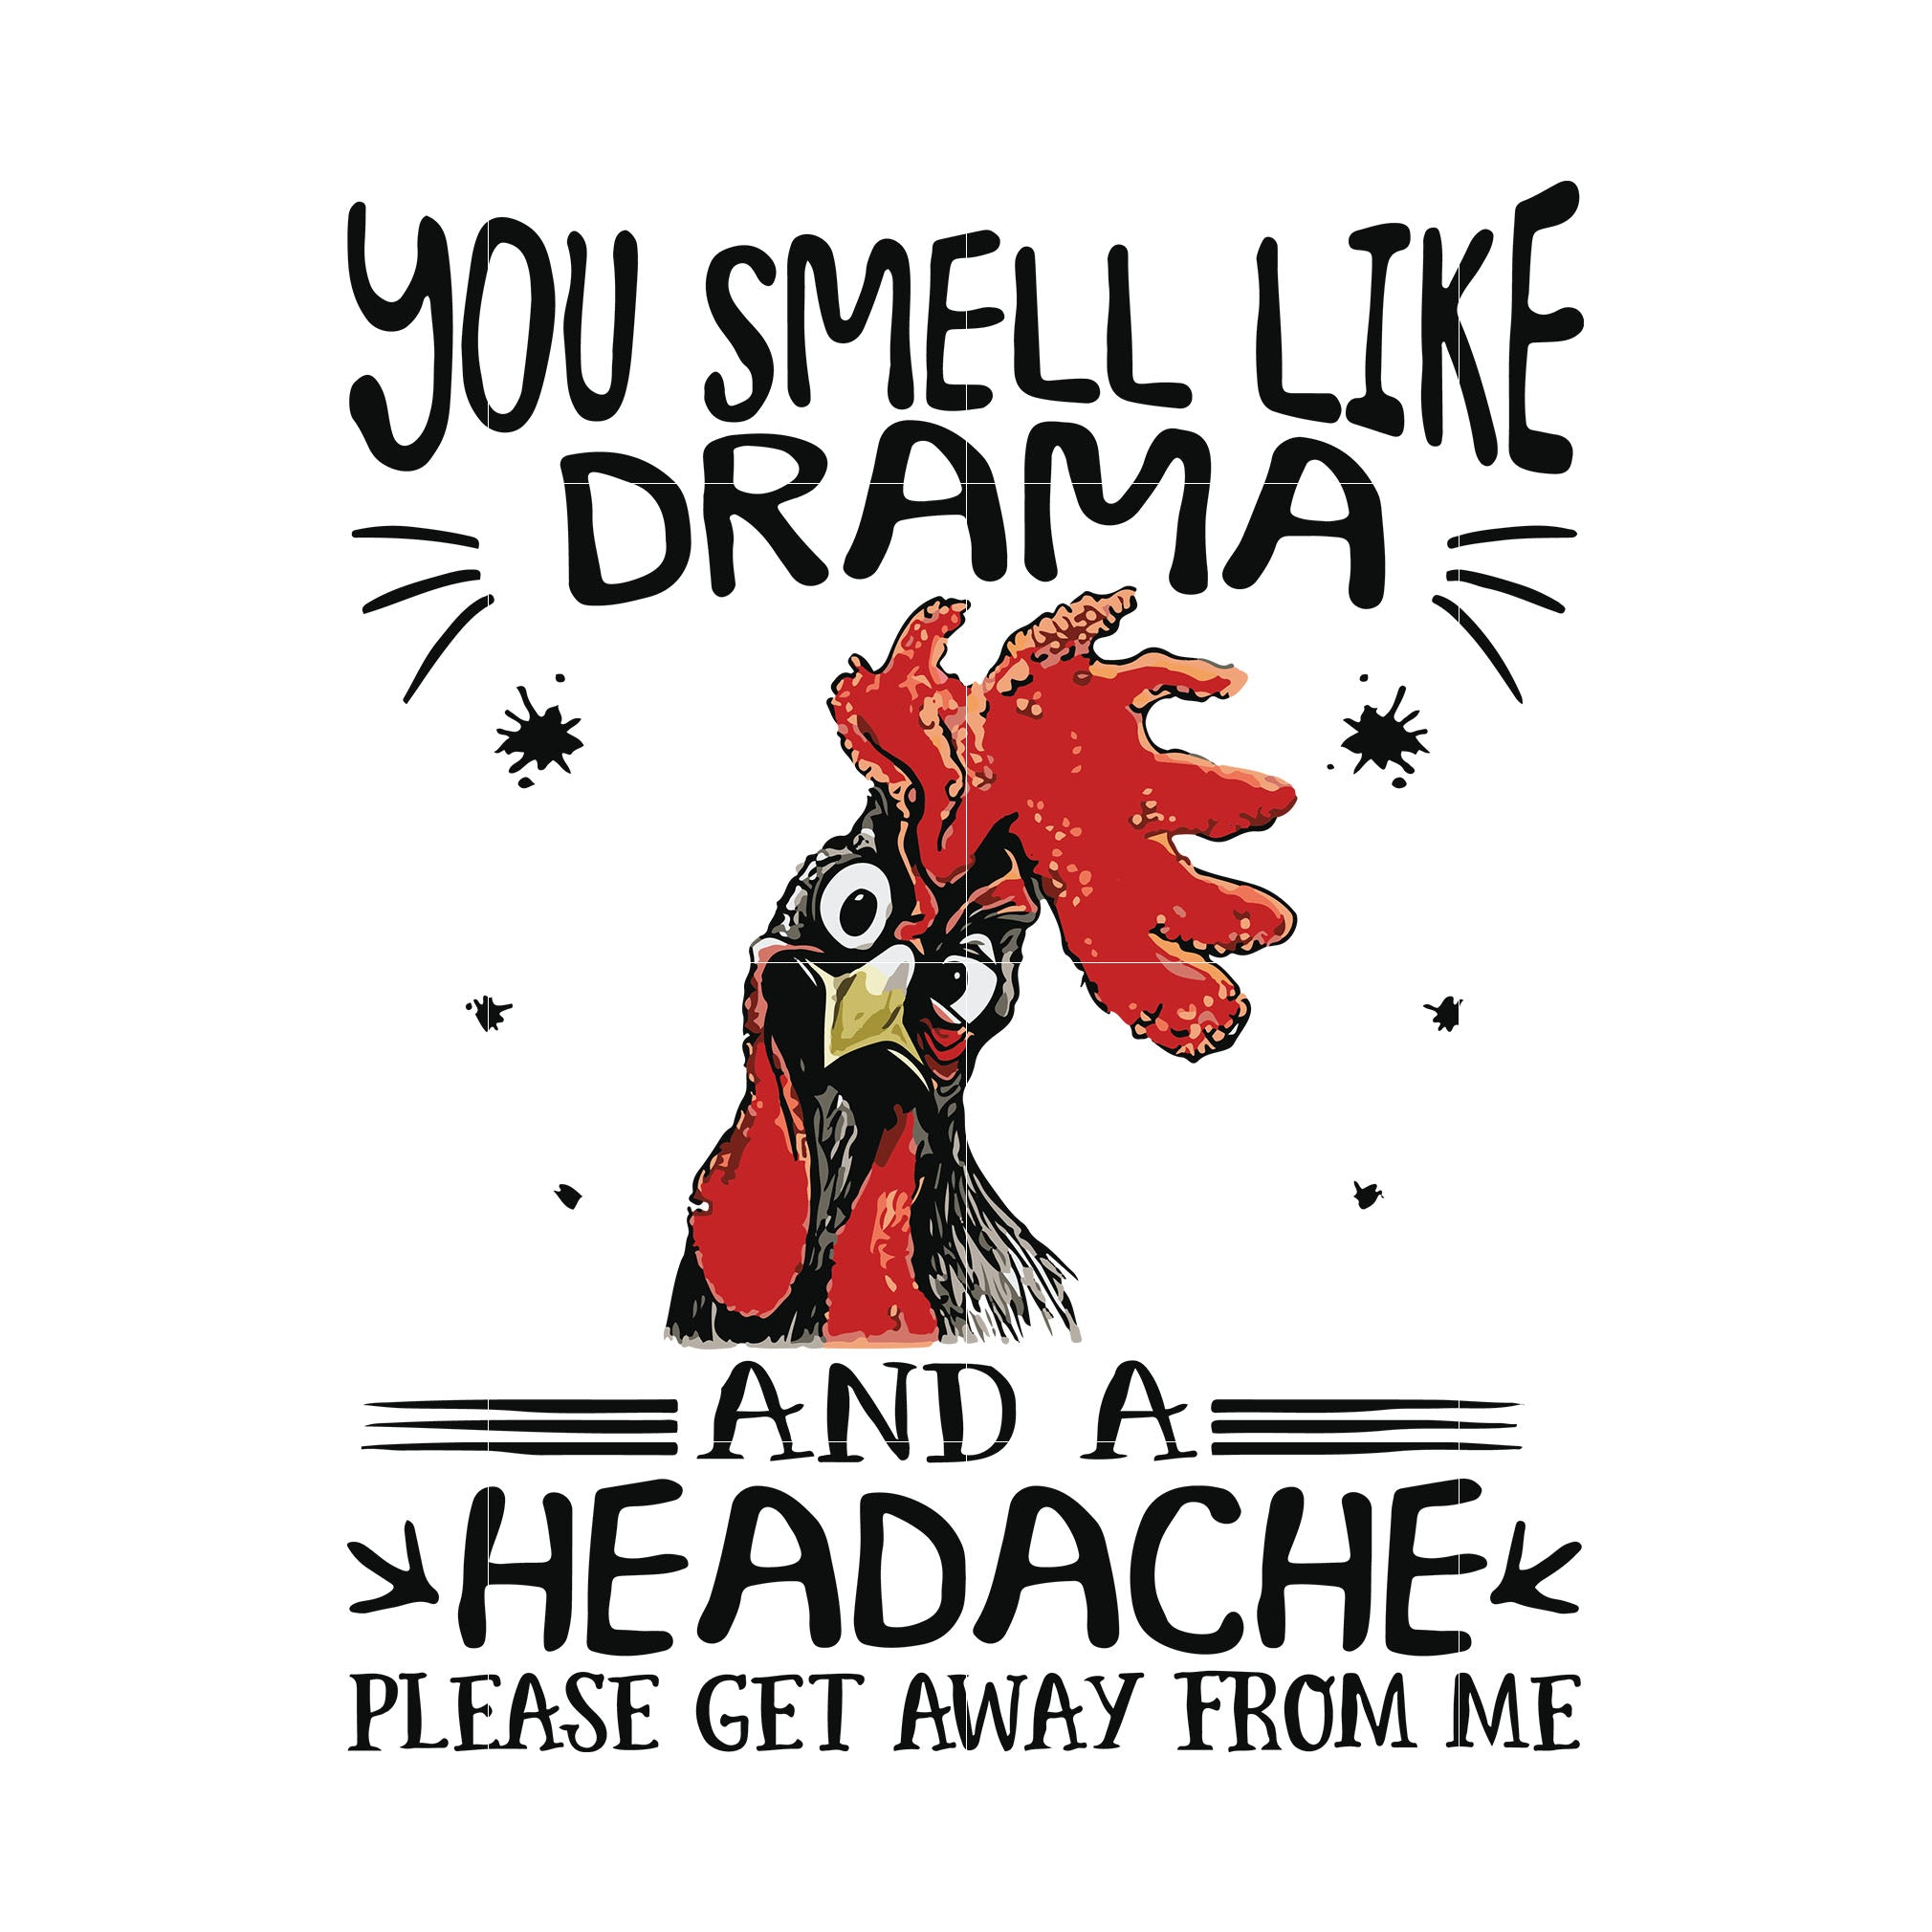 You smell like drama and a headache please get away from me svg ,dxf,eps,png digital file